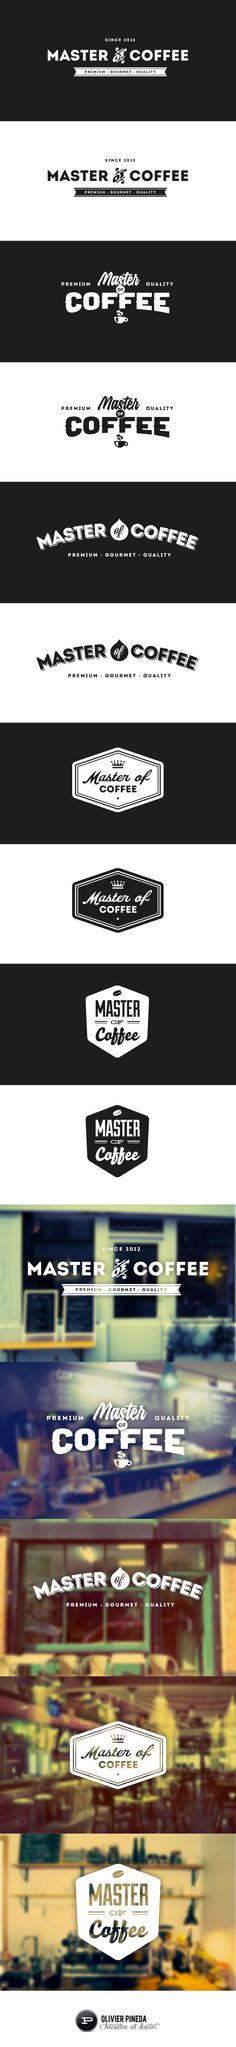 Master of Coffee by Olivier Pineda (via Creattica)